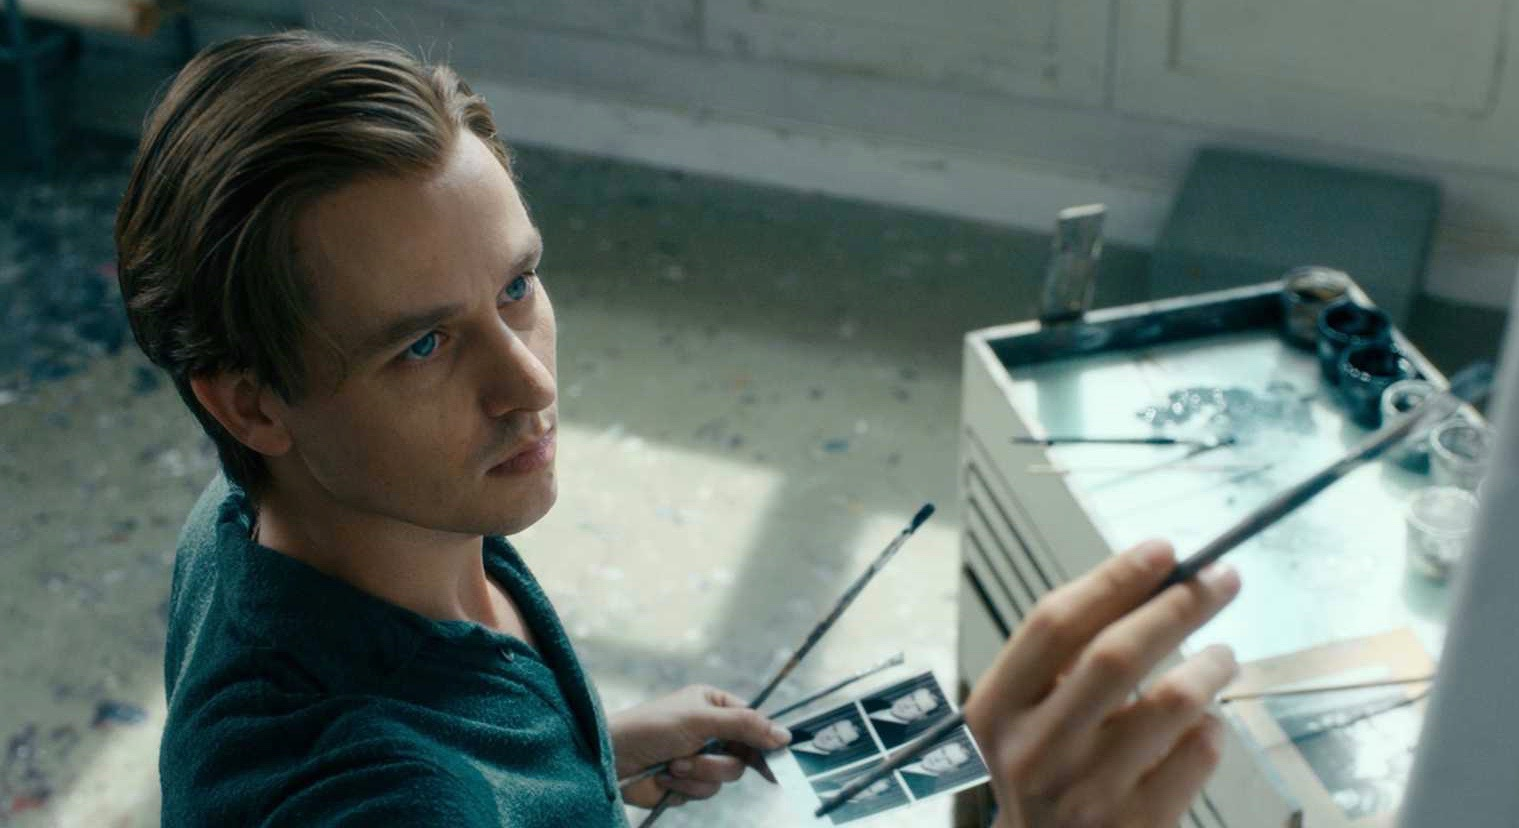 Young artist painting in Never Look Away film.